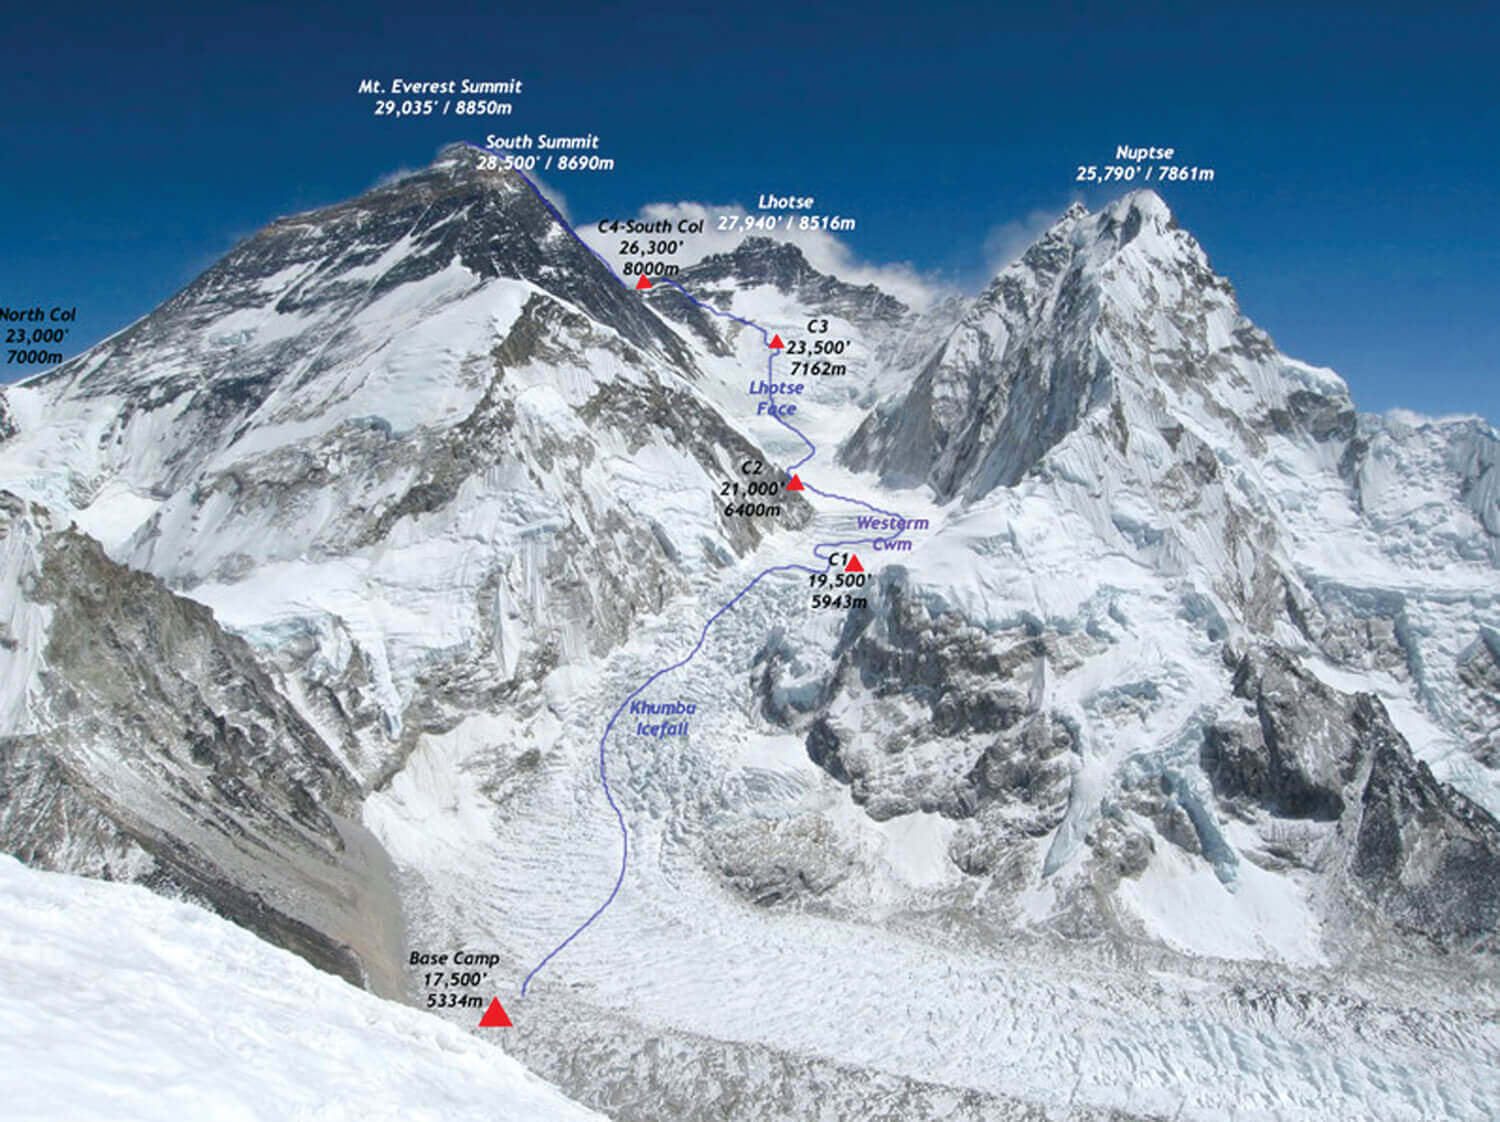 Kami Rita Sherpa scales Mount Everest for record 22nd time